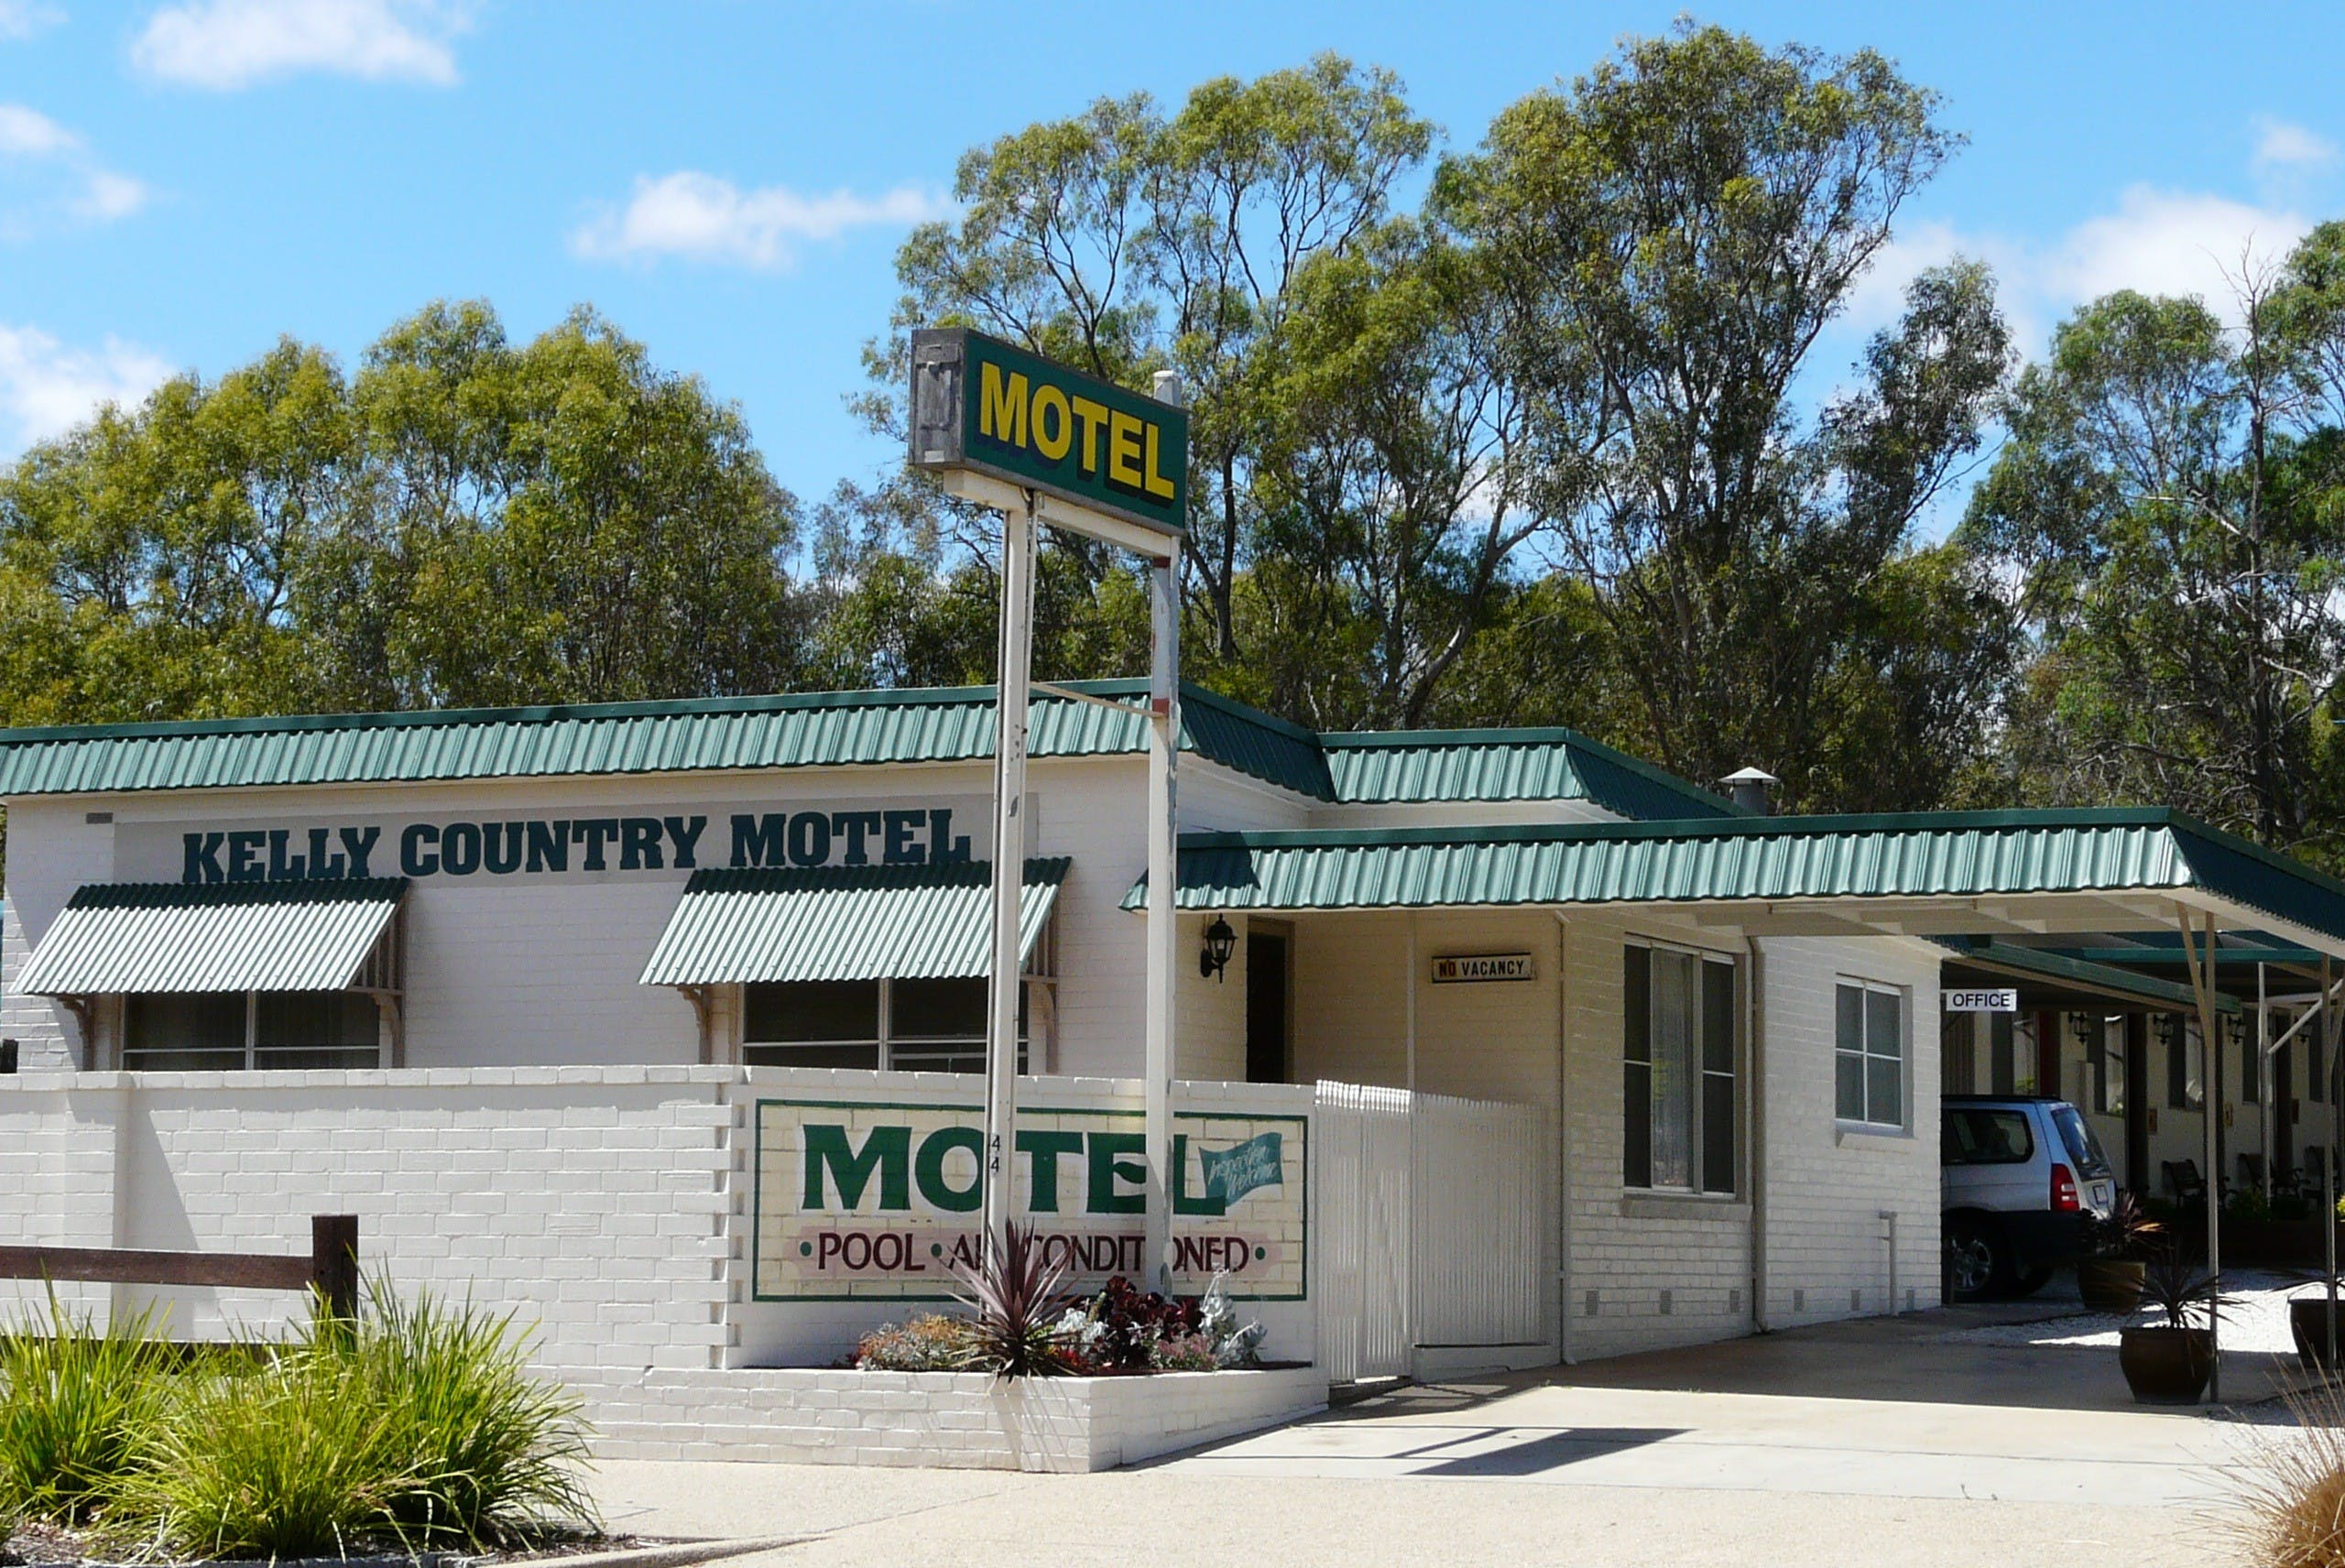 Glenrowan Kelly Country Motel - Tweed Heads Accommodation